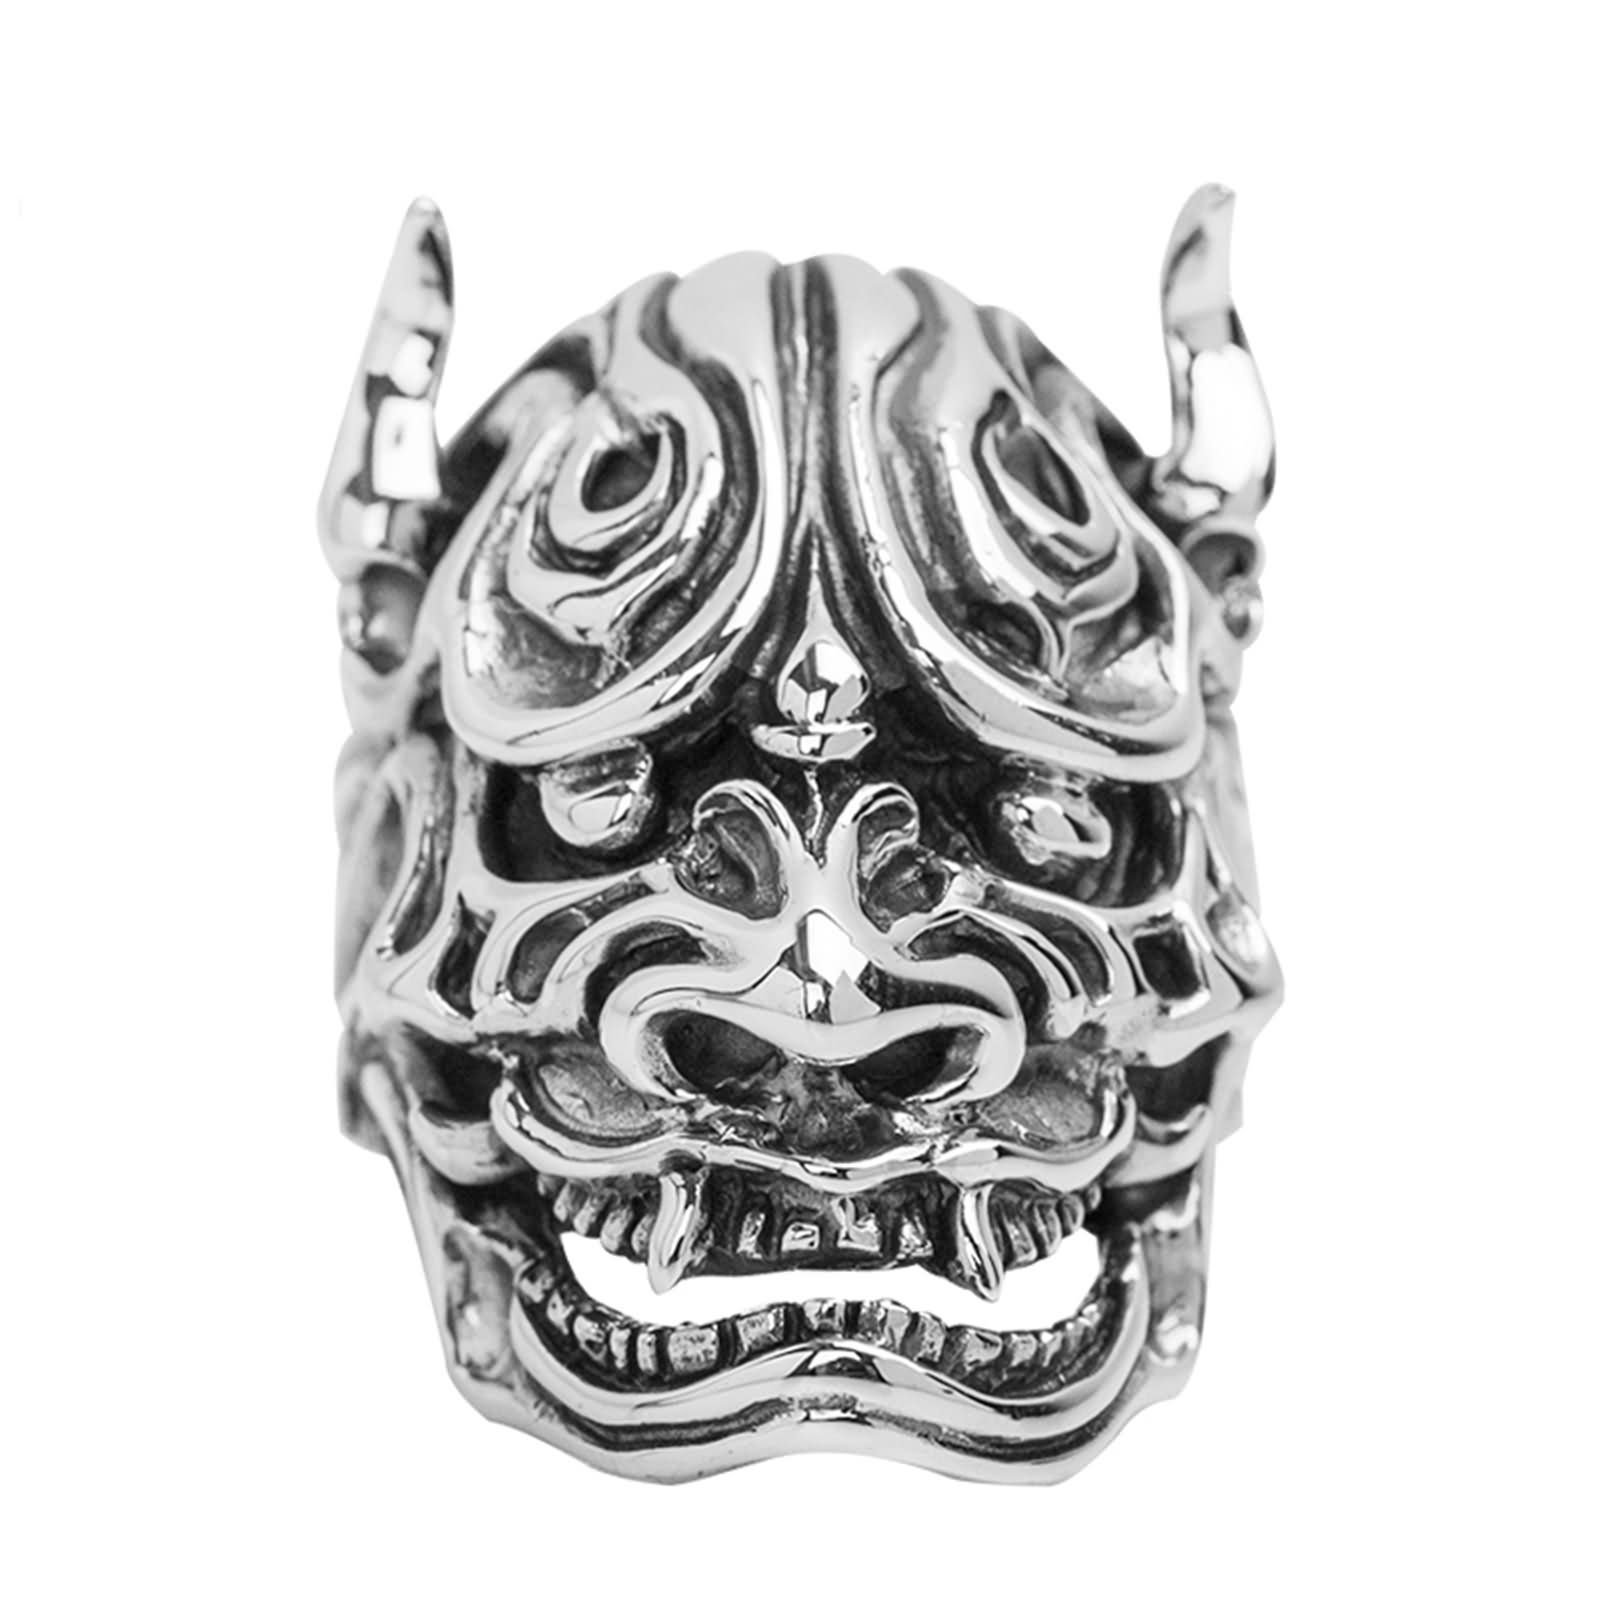 Bishilin Men's Ring Silver Plated Skull Friendship Rings Silver Size 11.5